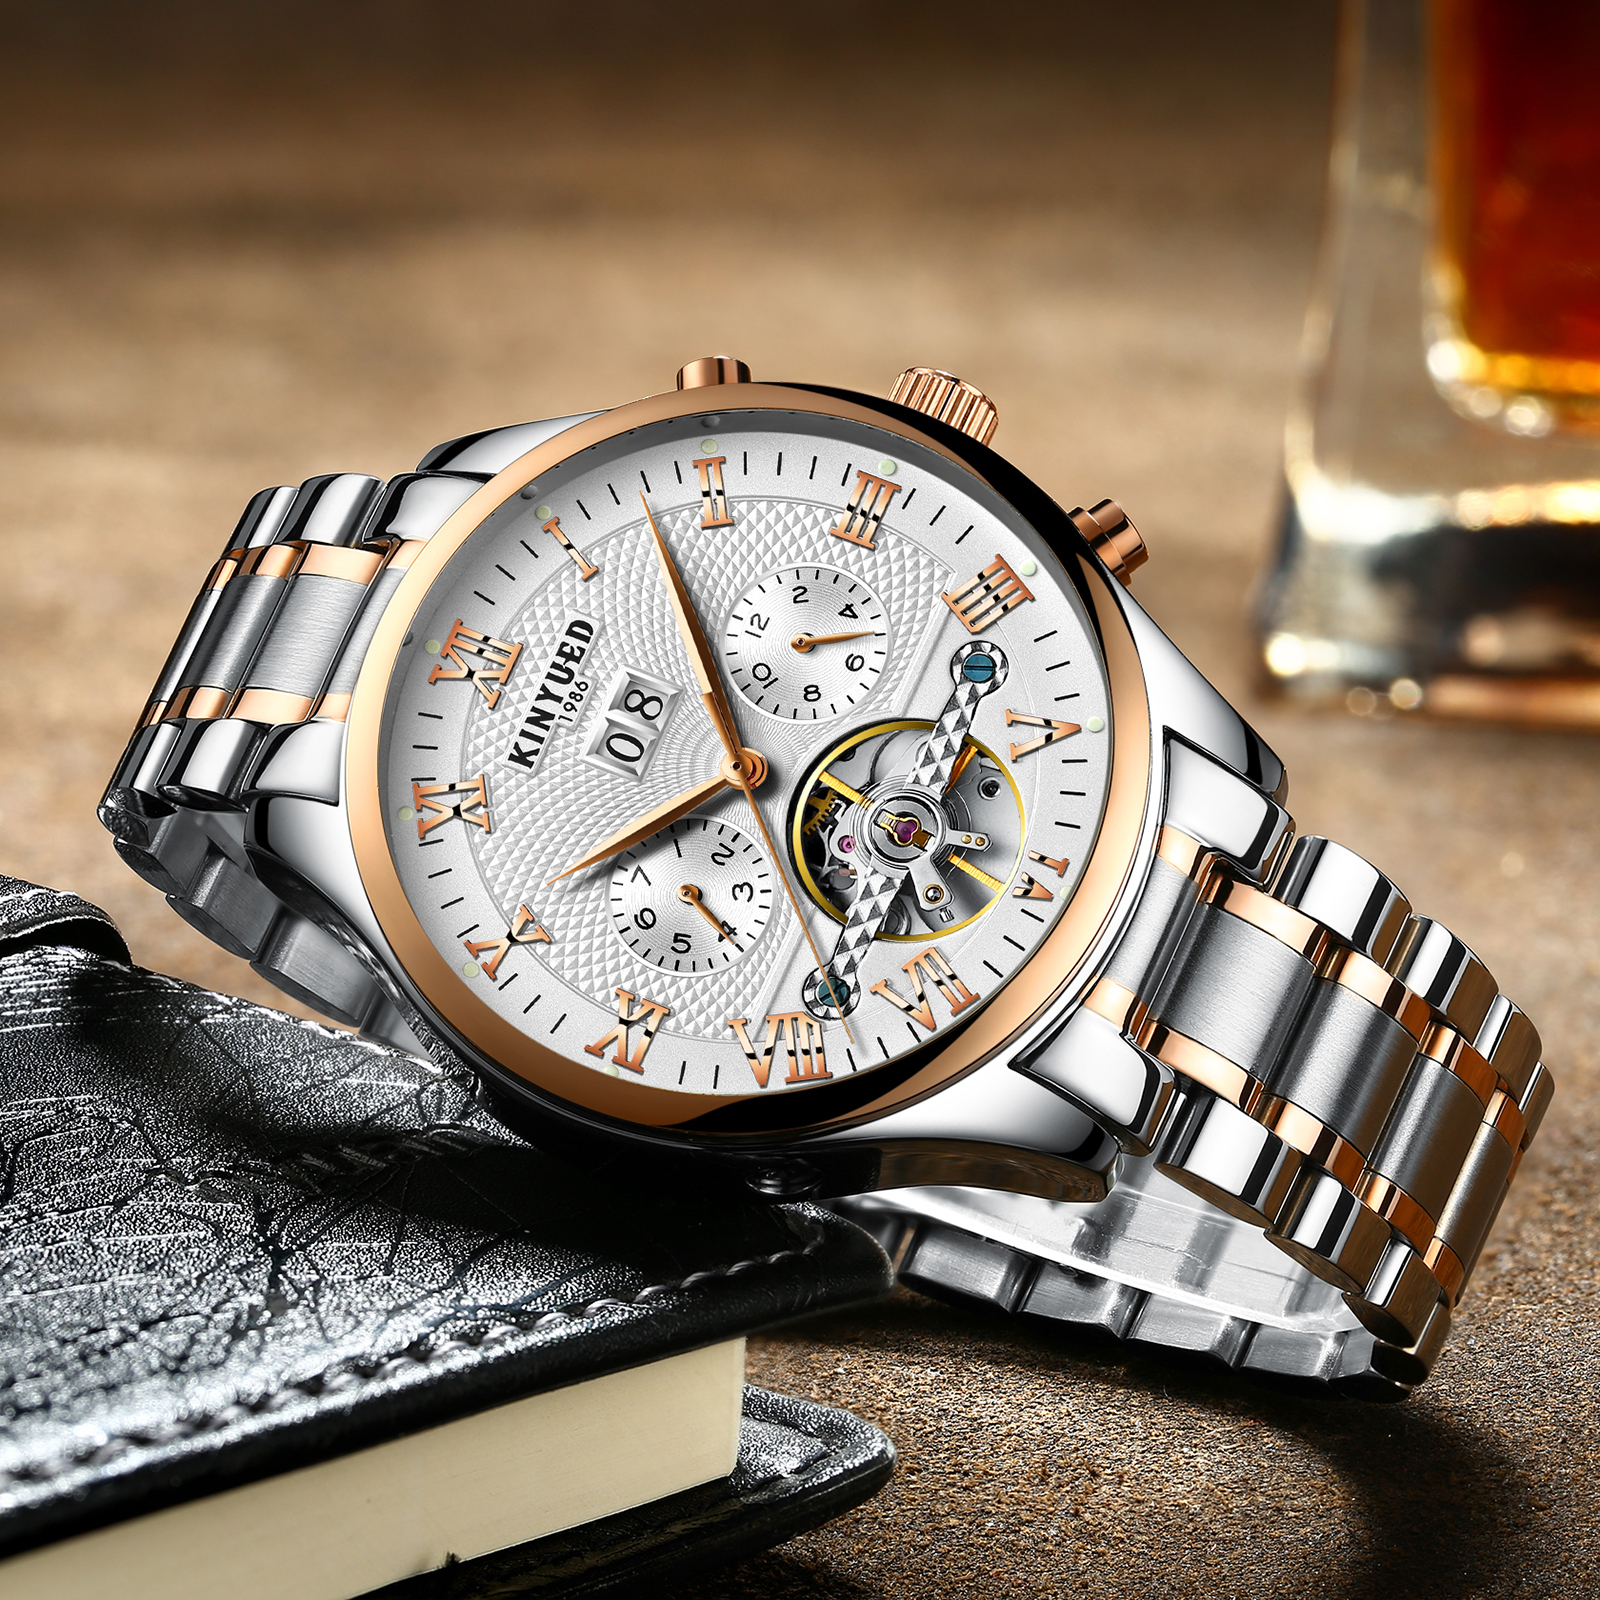 KINYUED JYD-J012 Working Sub-dial Automatic Mechanical Watch